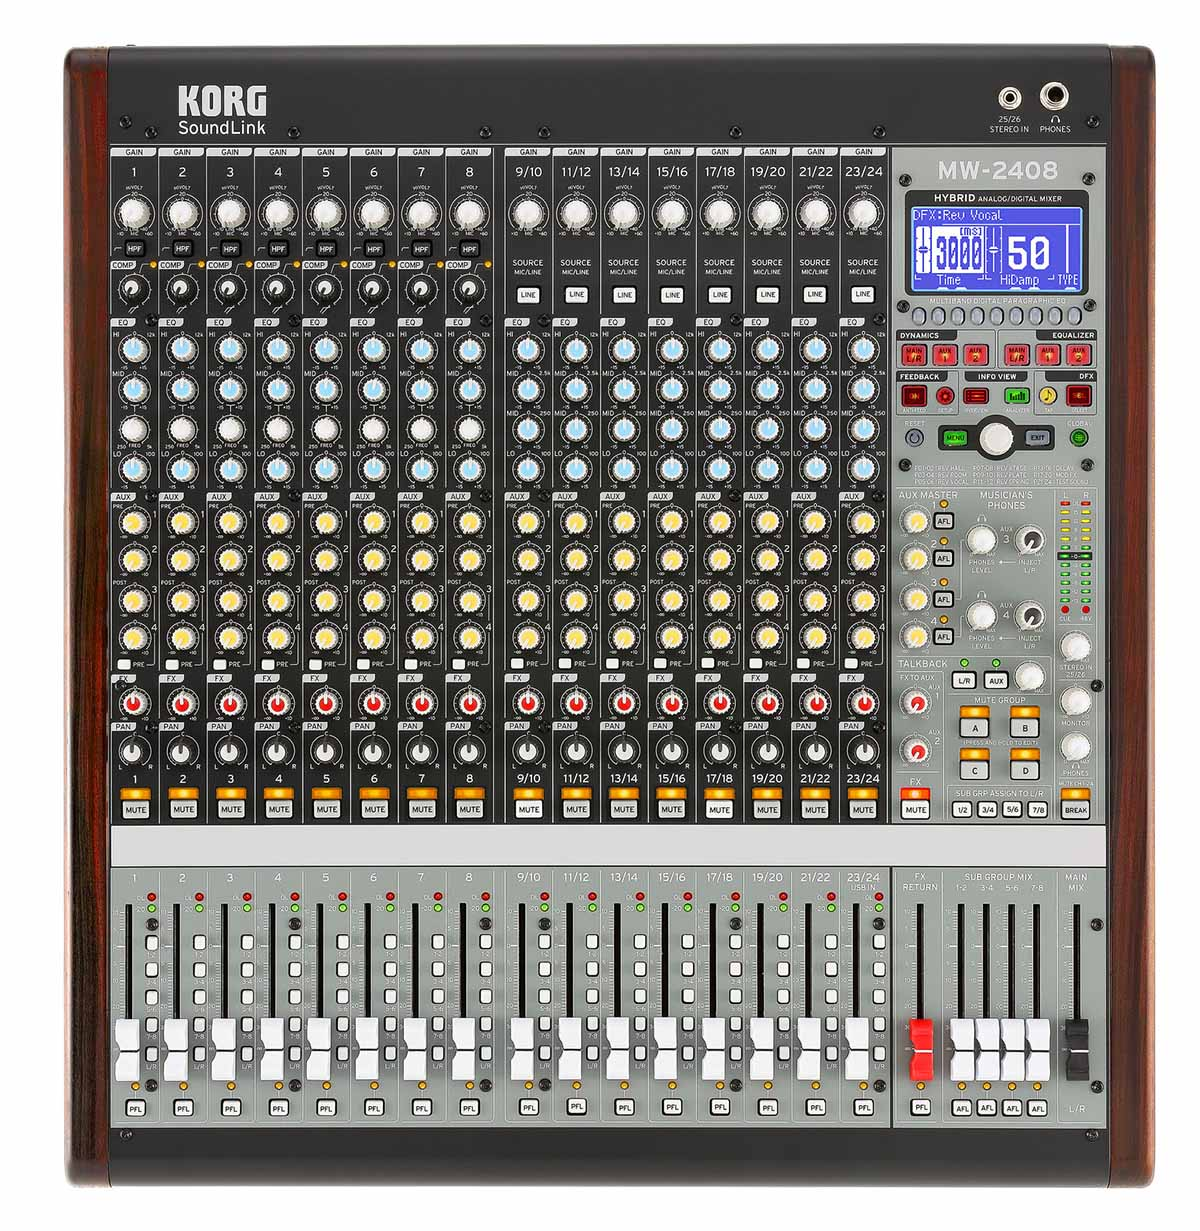 MÍXER ANALÓGICO/DIGITAL KORG SOUNDLINK MW-2408